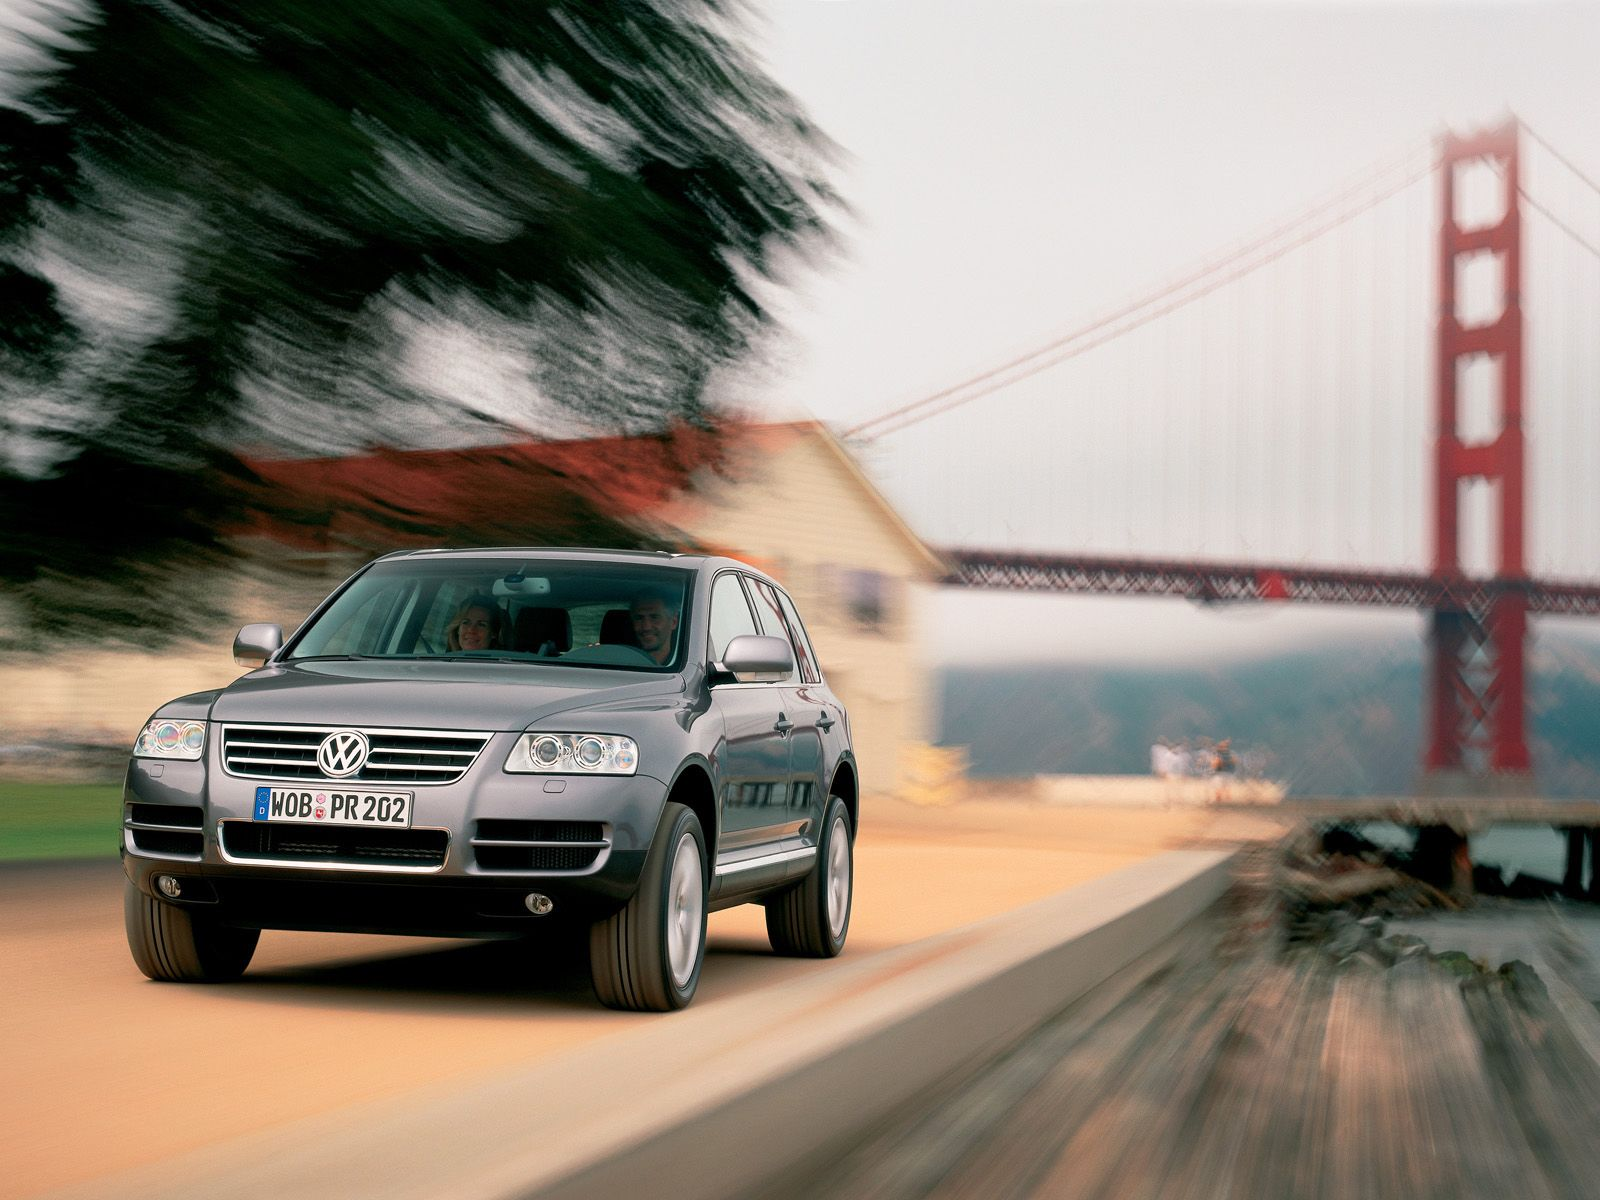 Volkswagen Touareg photo 9624